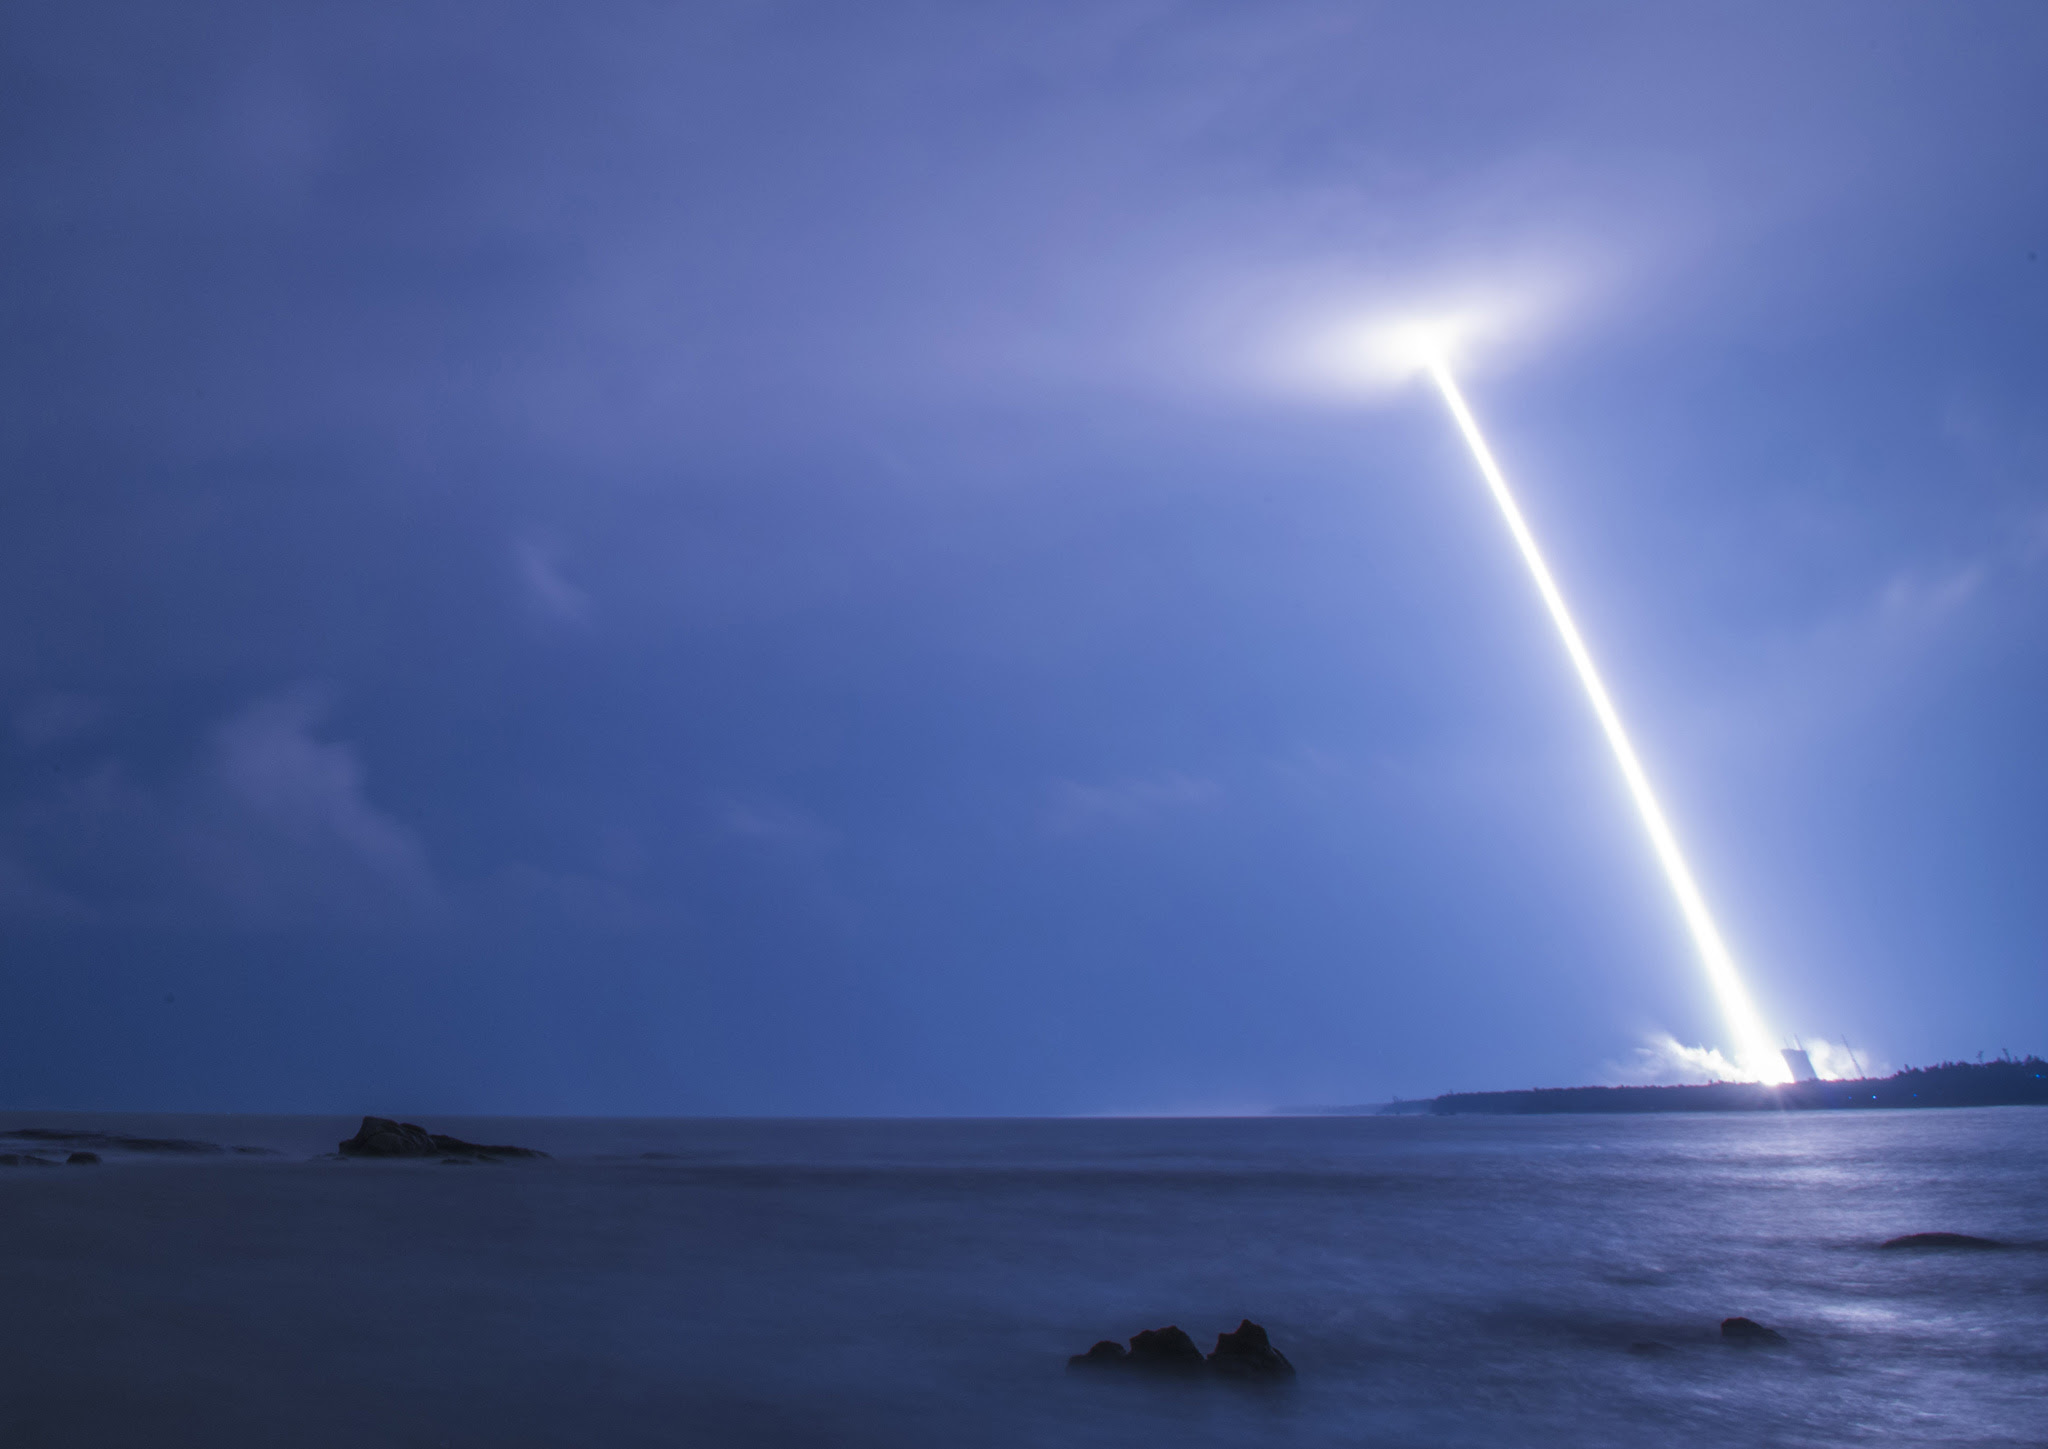 Blast trail of China's heavy-lift rocket Long March-5 as it launches from Wenchang, south China's Hainan province.